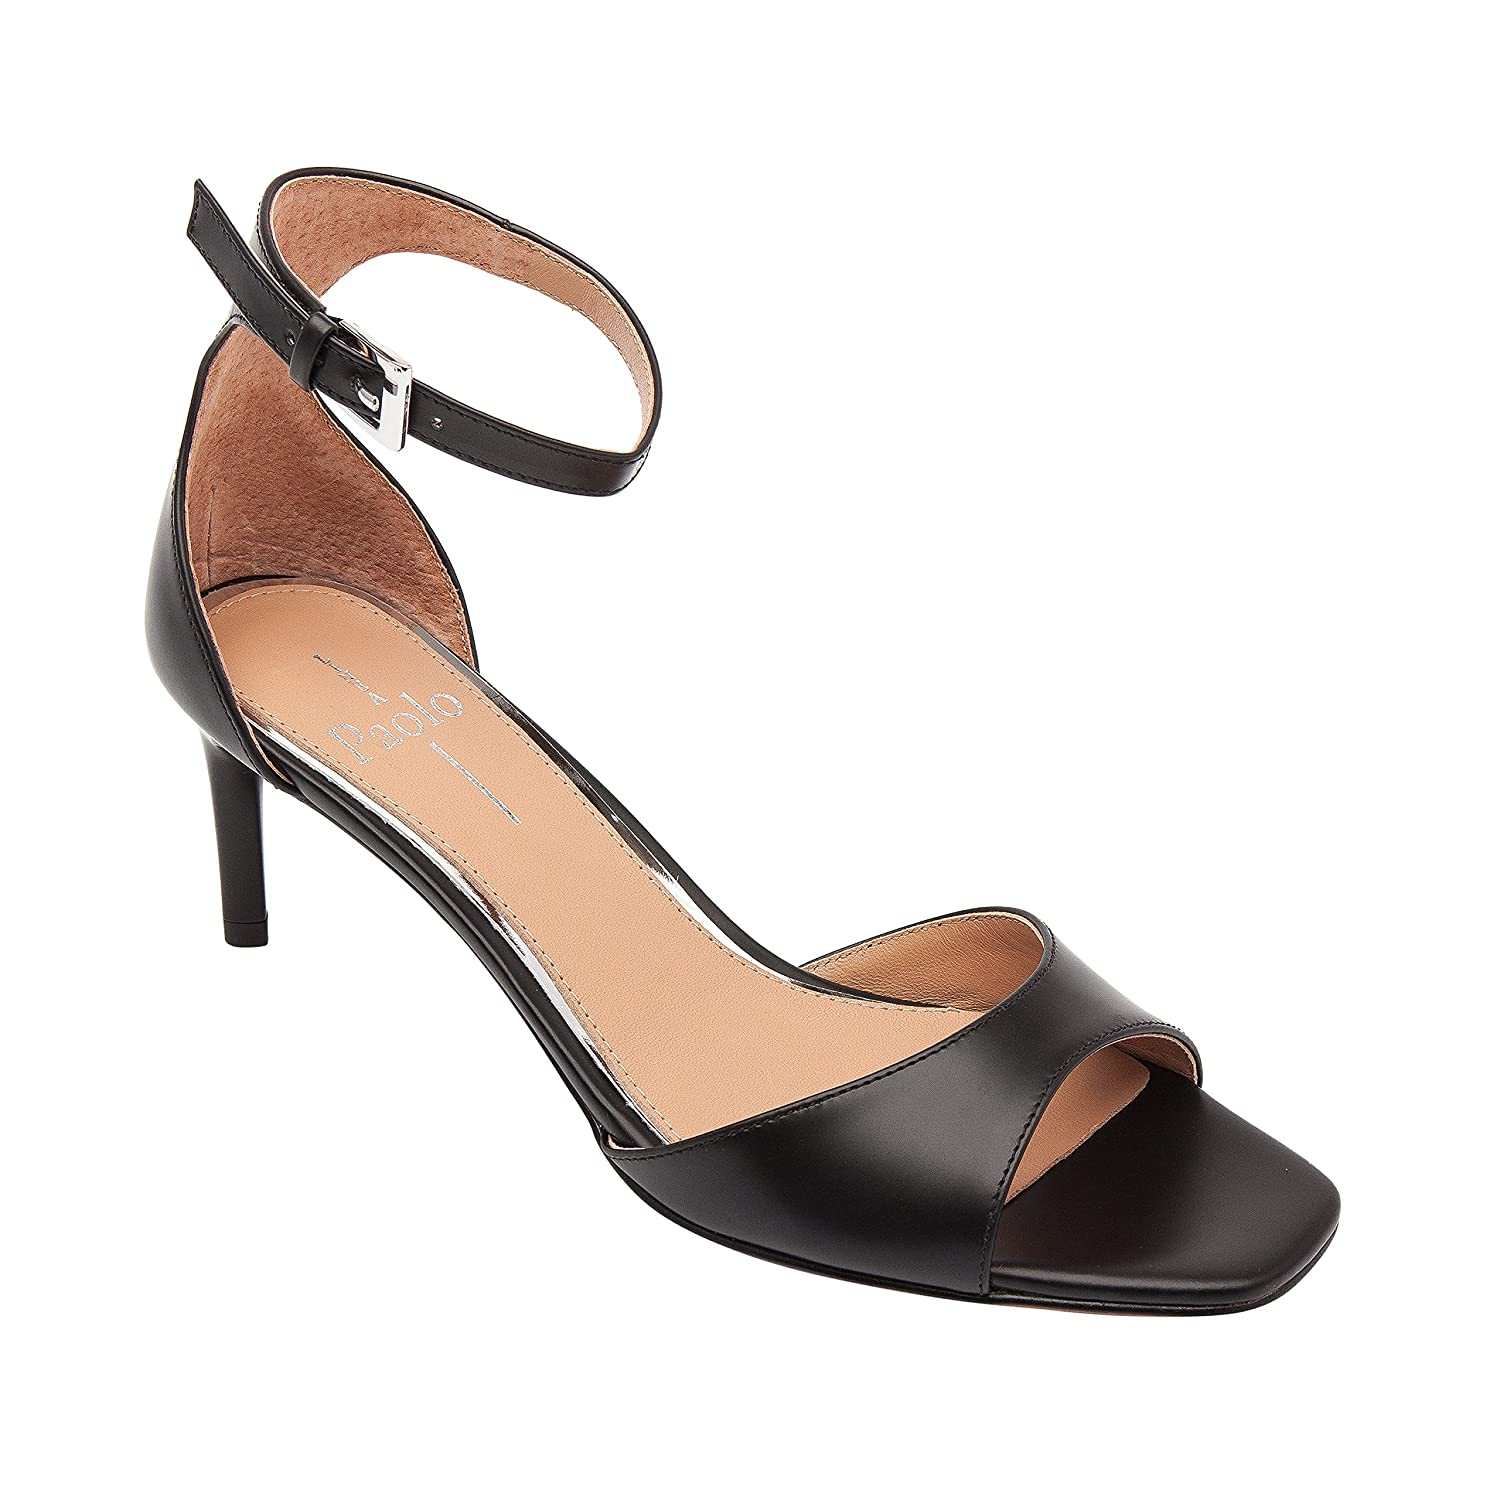 Linea Paolo Helen | Women's Mid-Height Leather Ankle Strap Sandal B07958D1WQ 7.5 M US|Black Leather